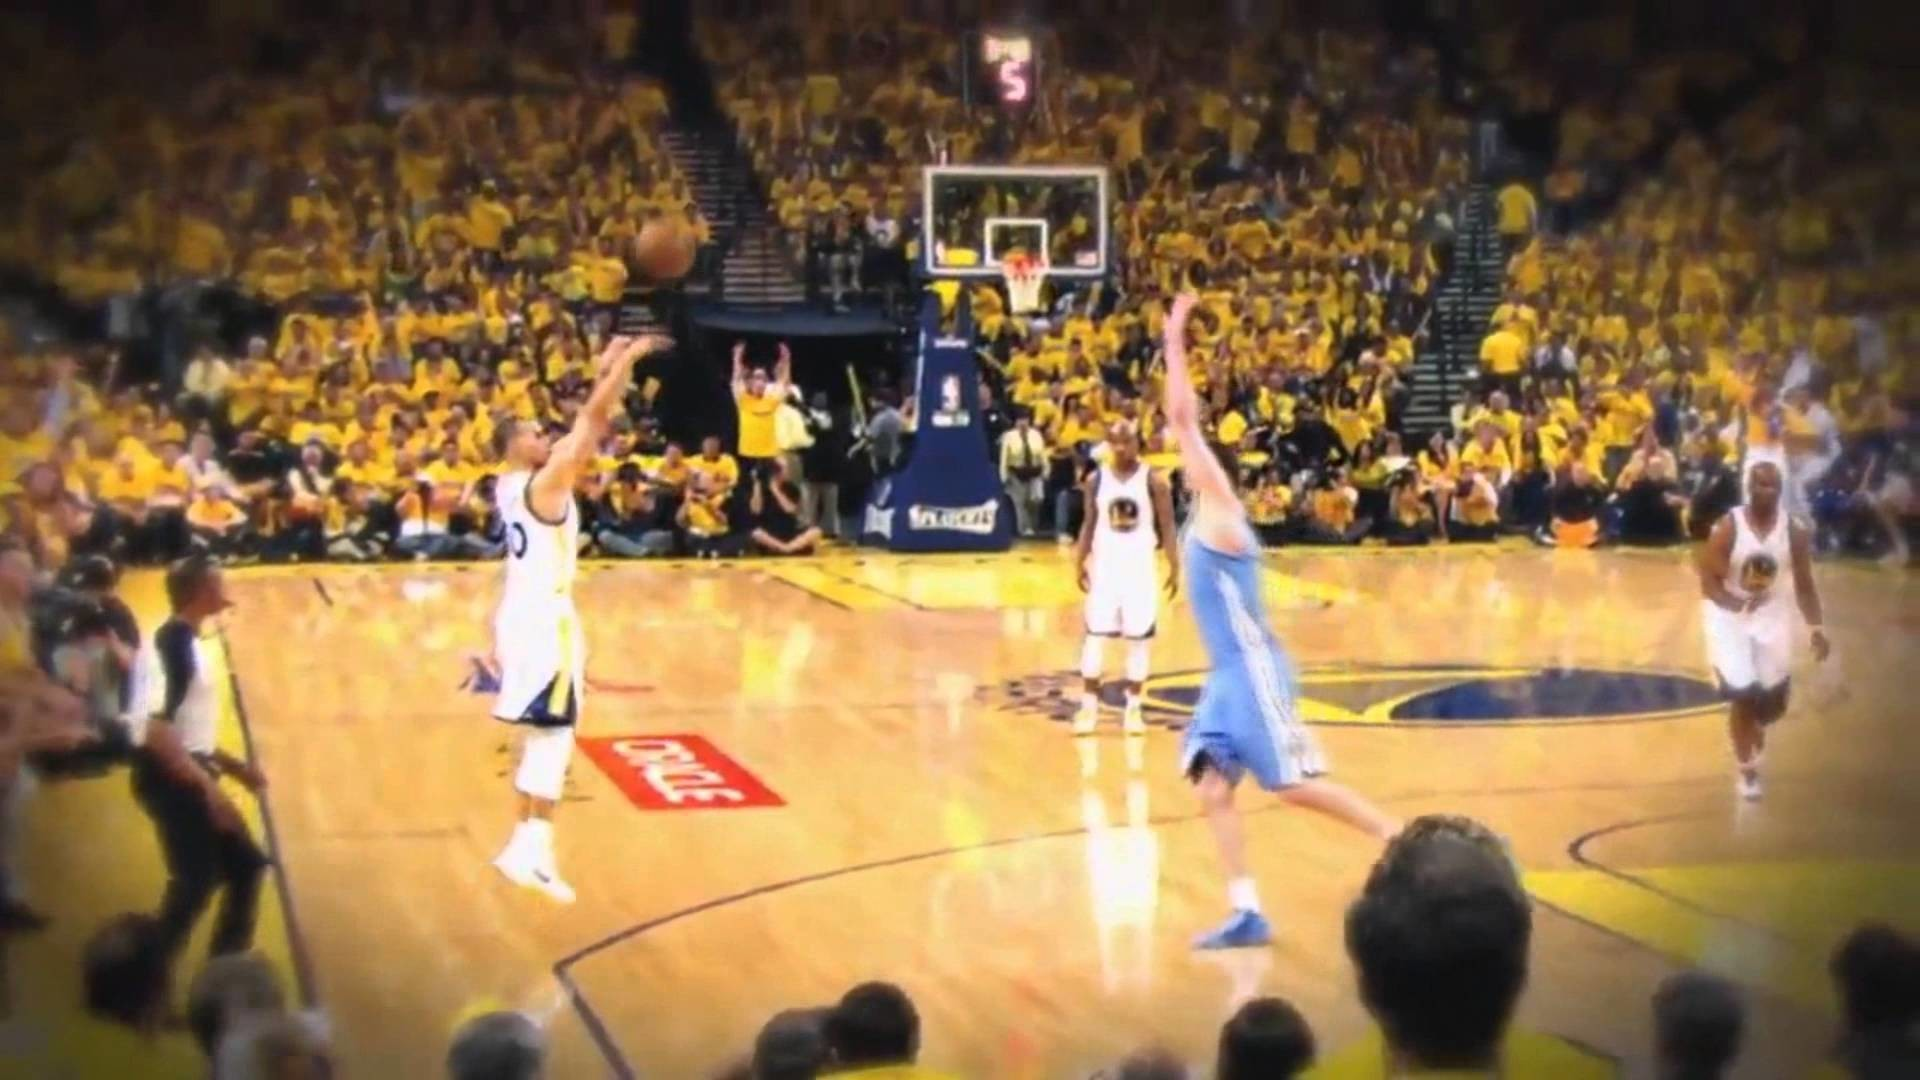 Good Wallpaper Mac Stephen Curry - 403953  Perfect Image Reference_446960.jpg